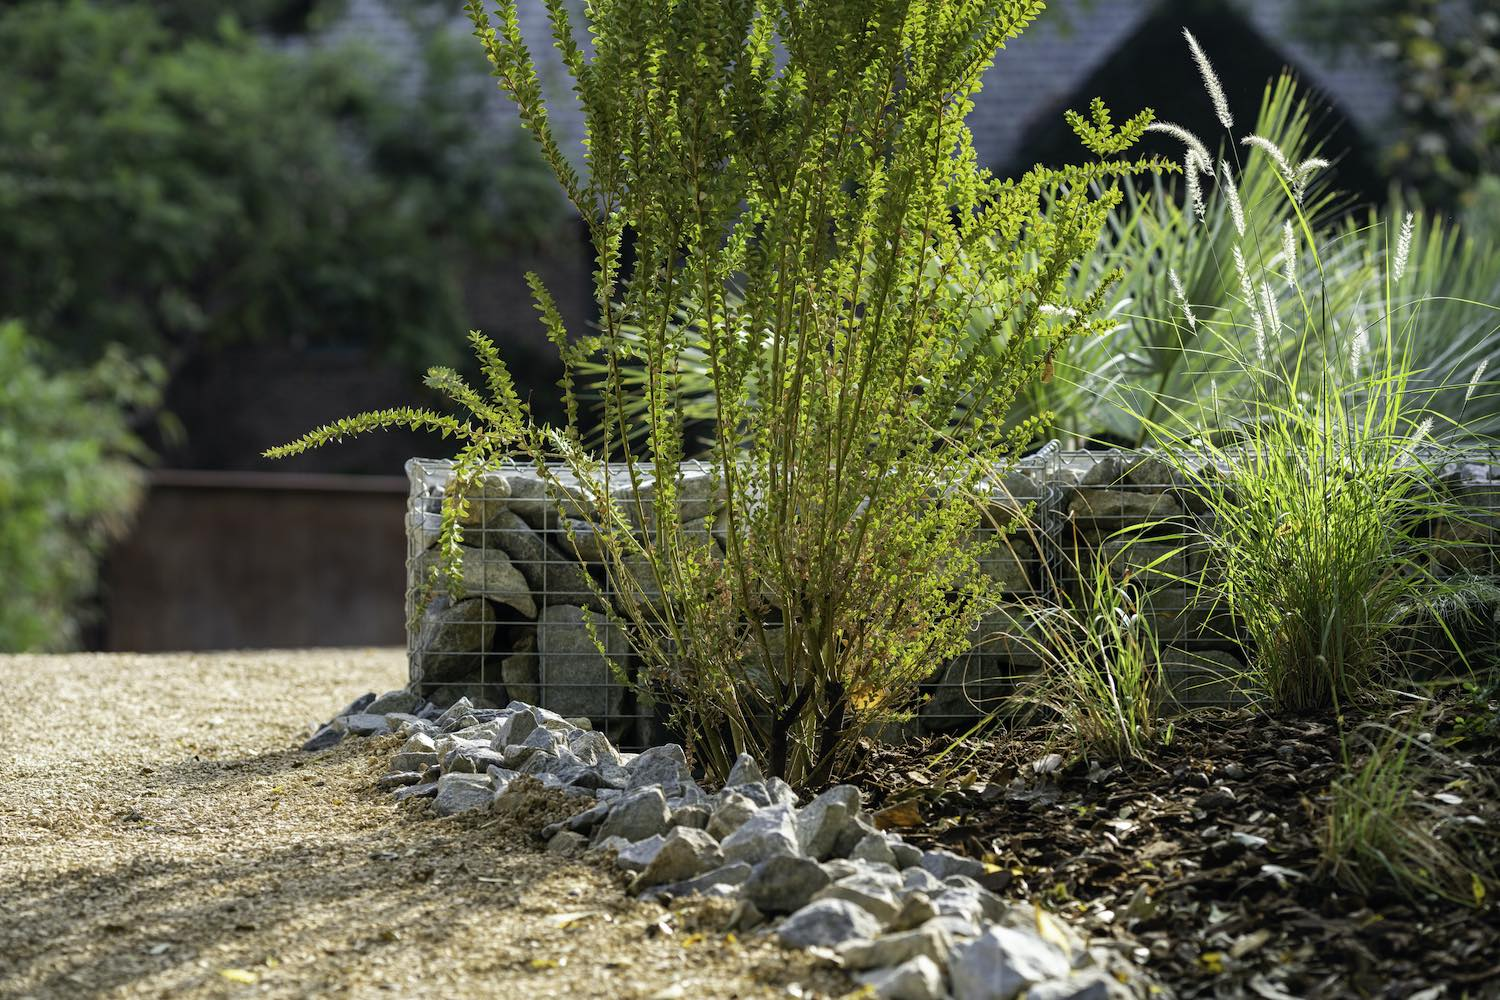 garden with plants, sand and gravel